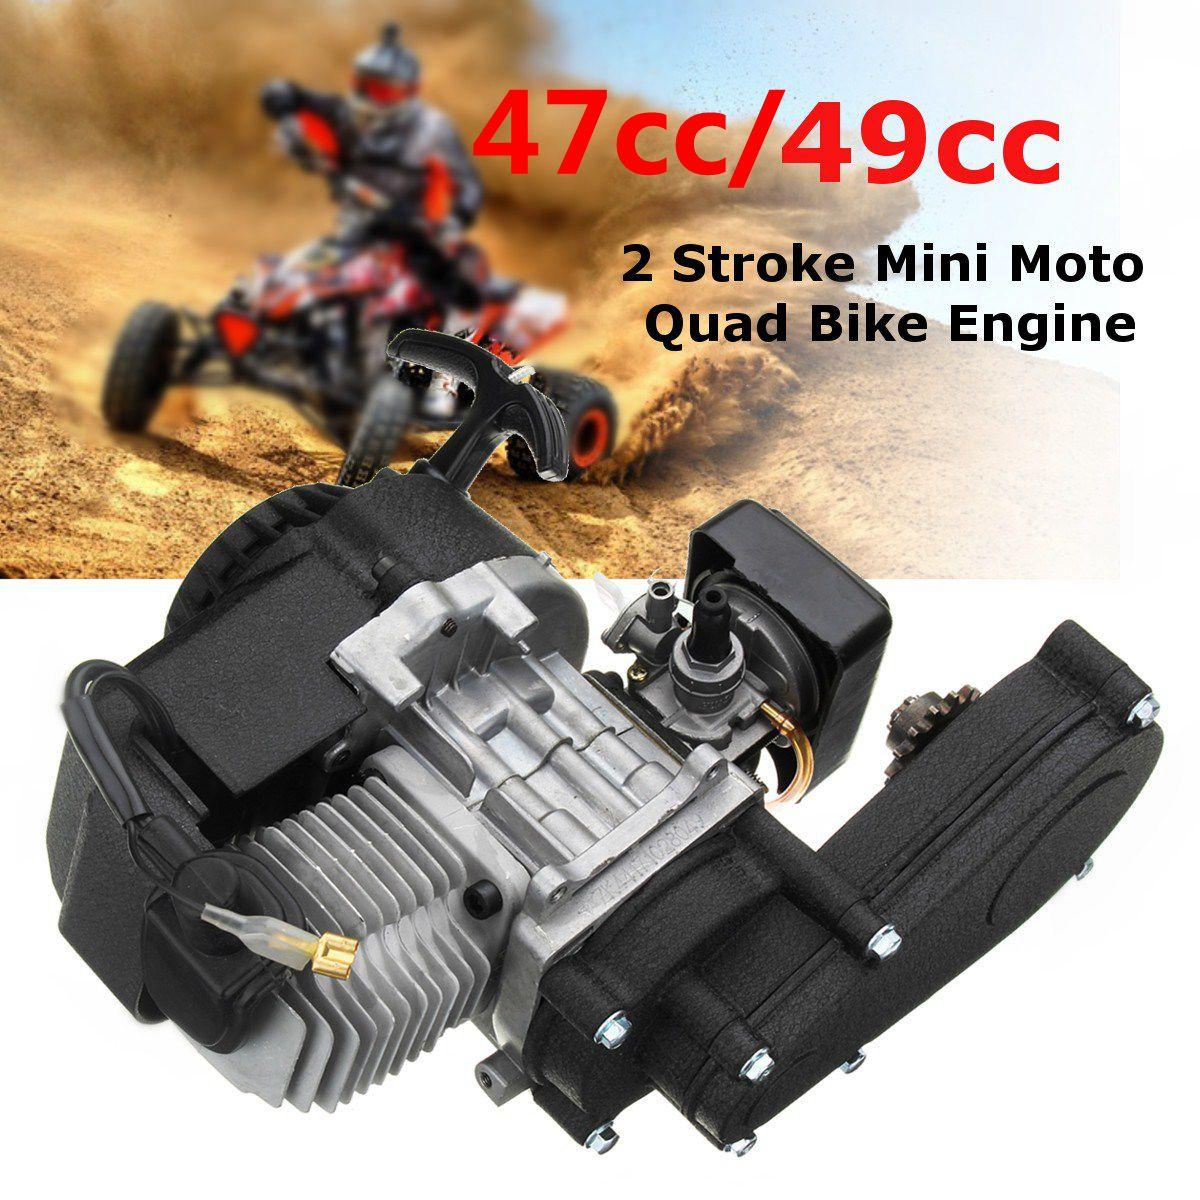 【Flash deal】49CC MINI DIRT BIKE COMPLETE ENGINE WITH TRANSFER BOX RED PULL START